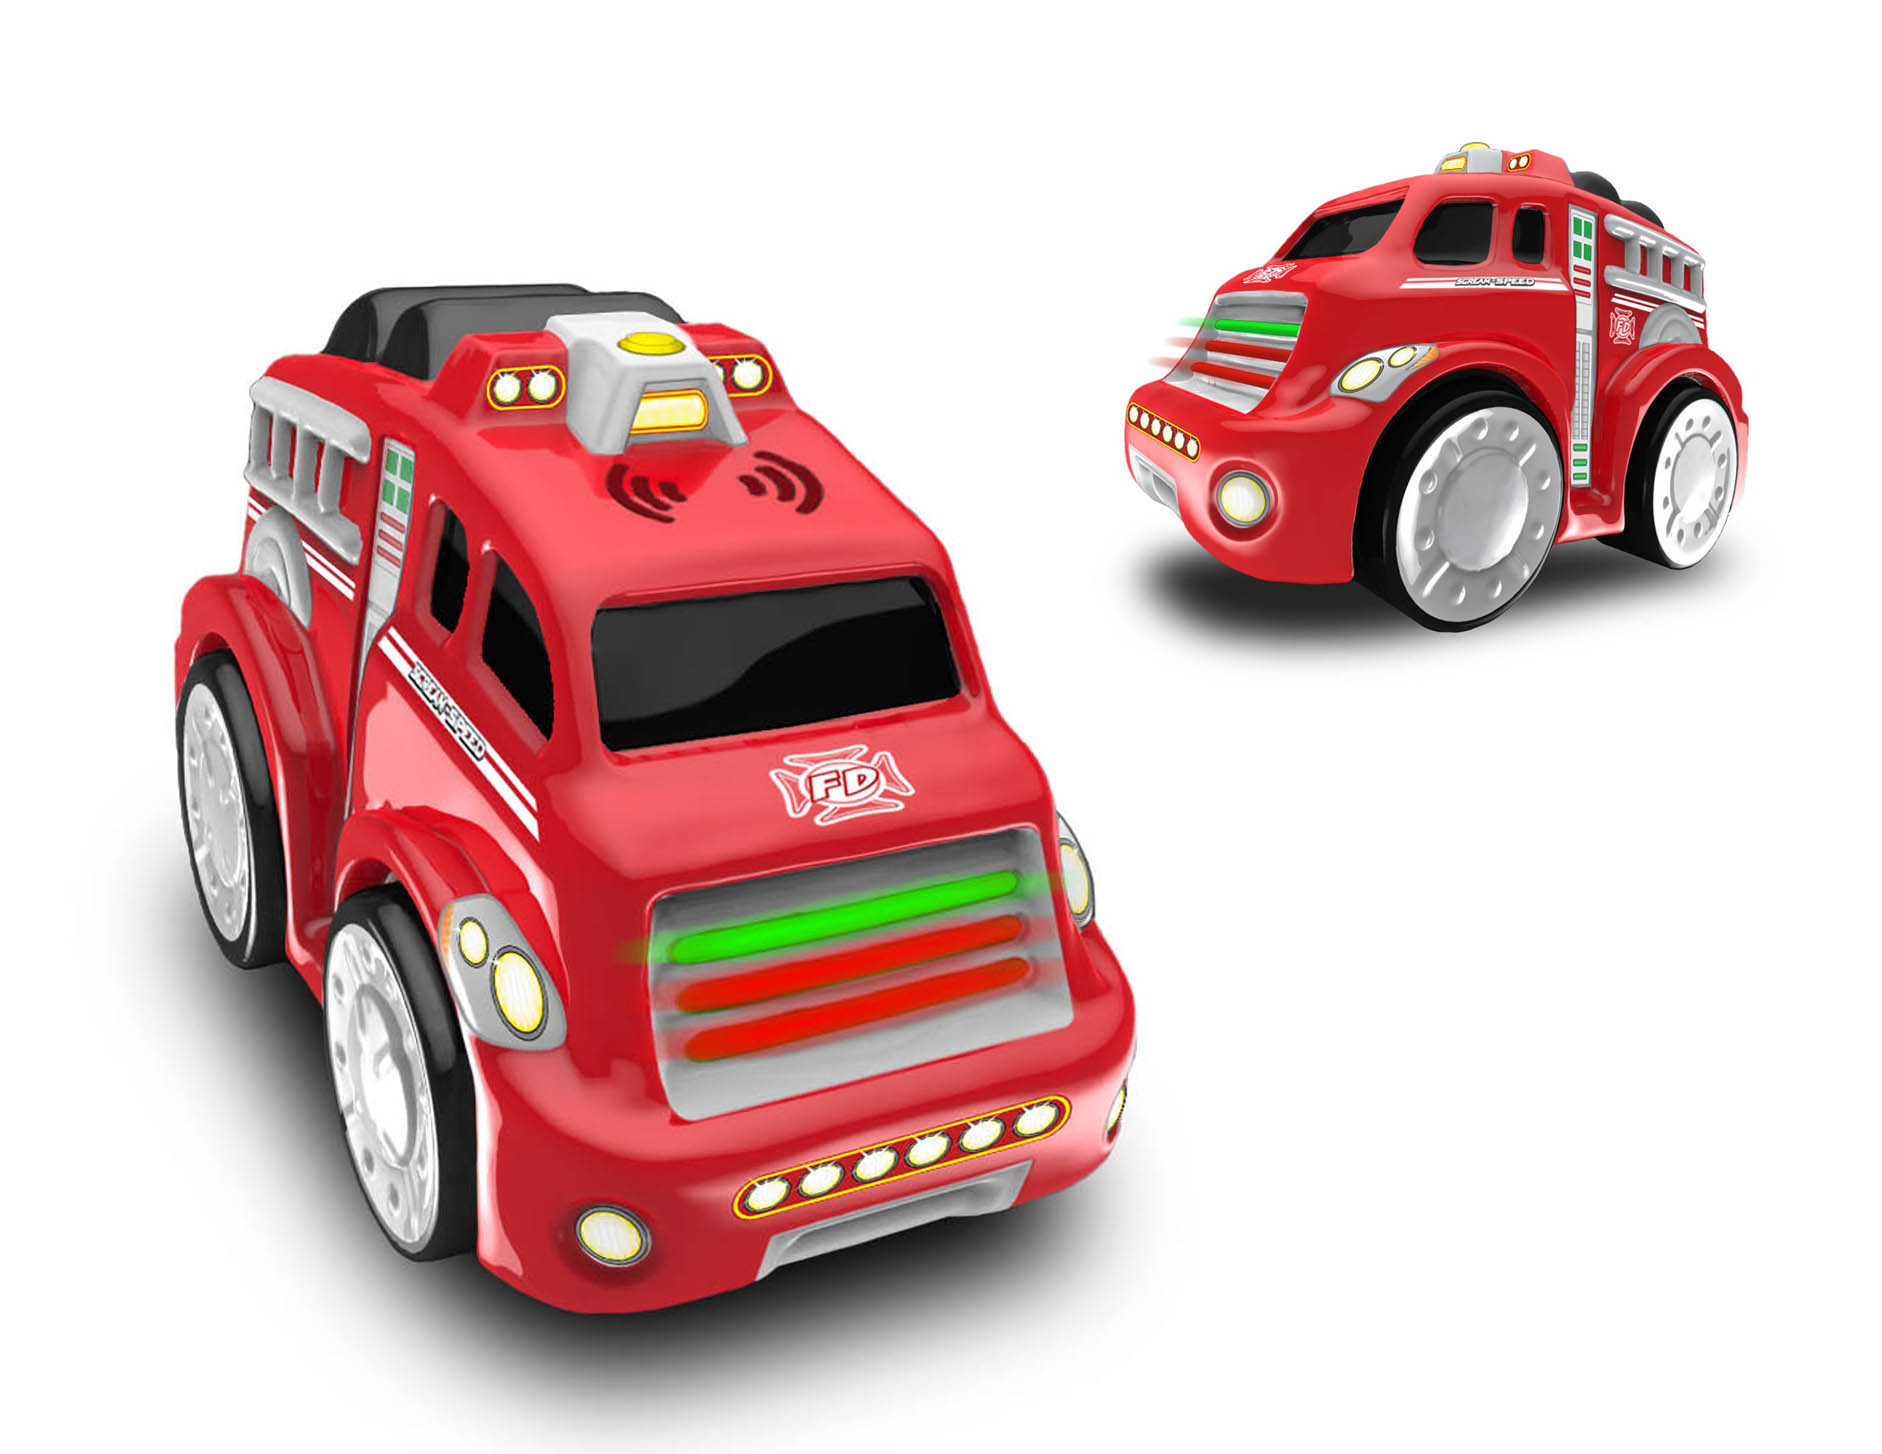 screamer firetruck render final.jpg